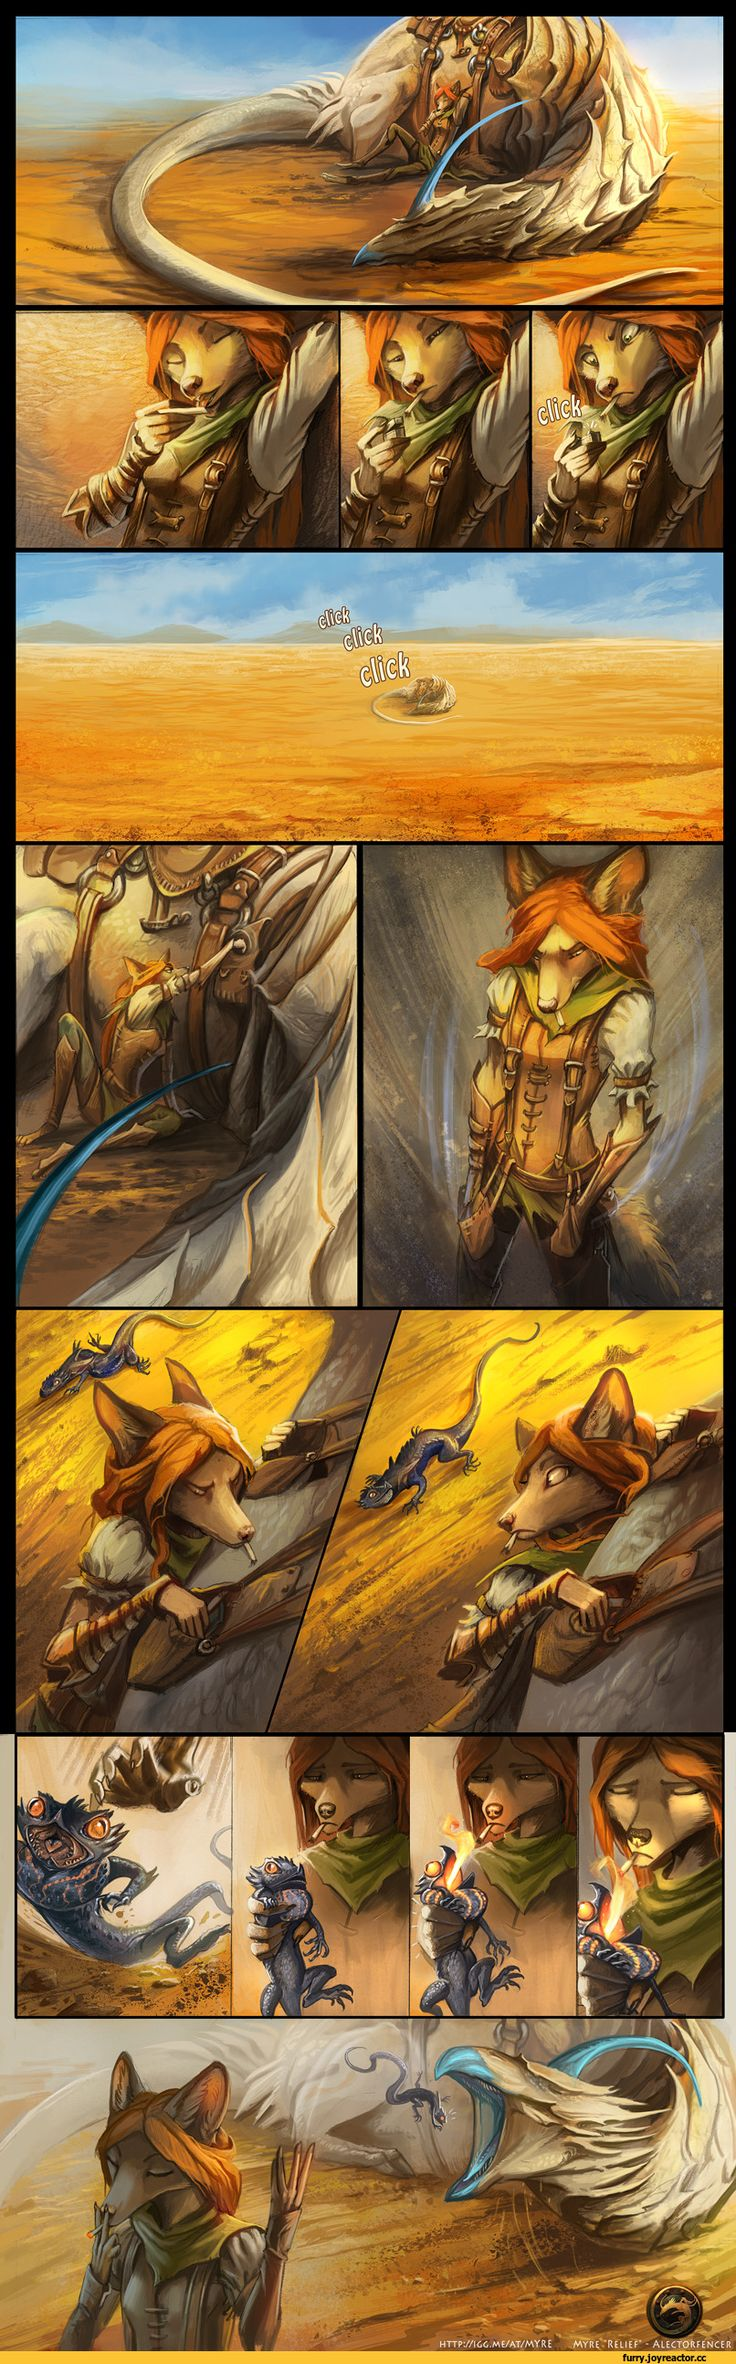 from Maxwell gay furry comic books